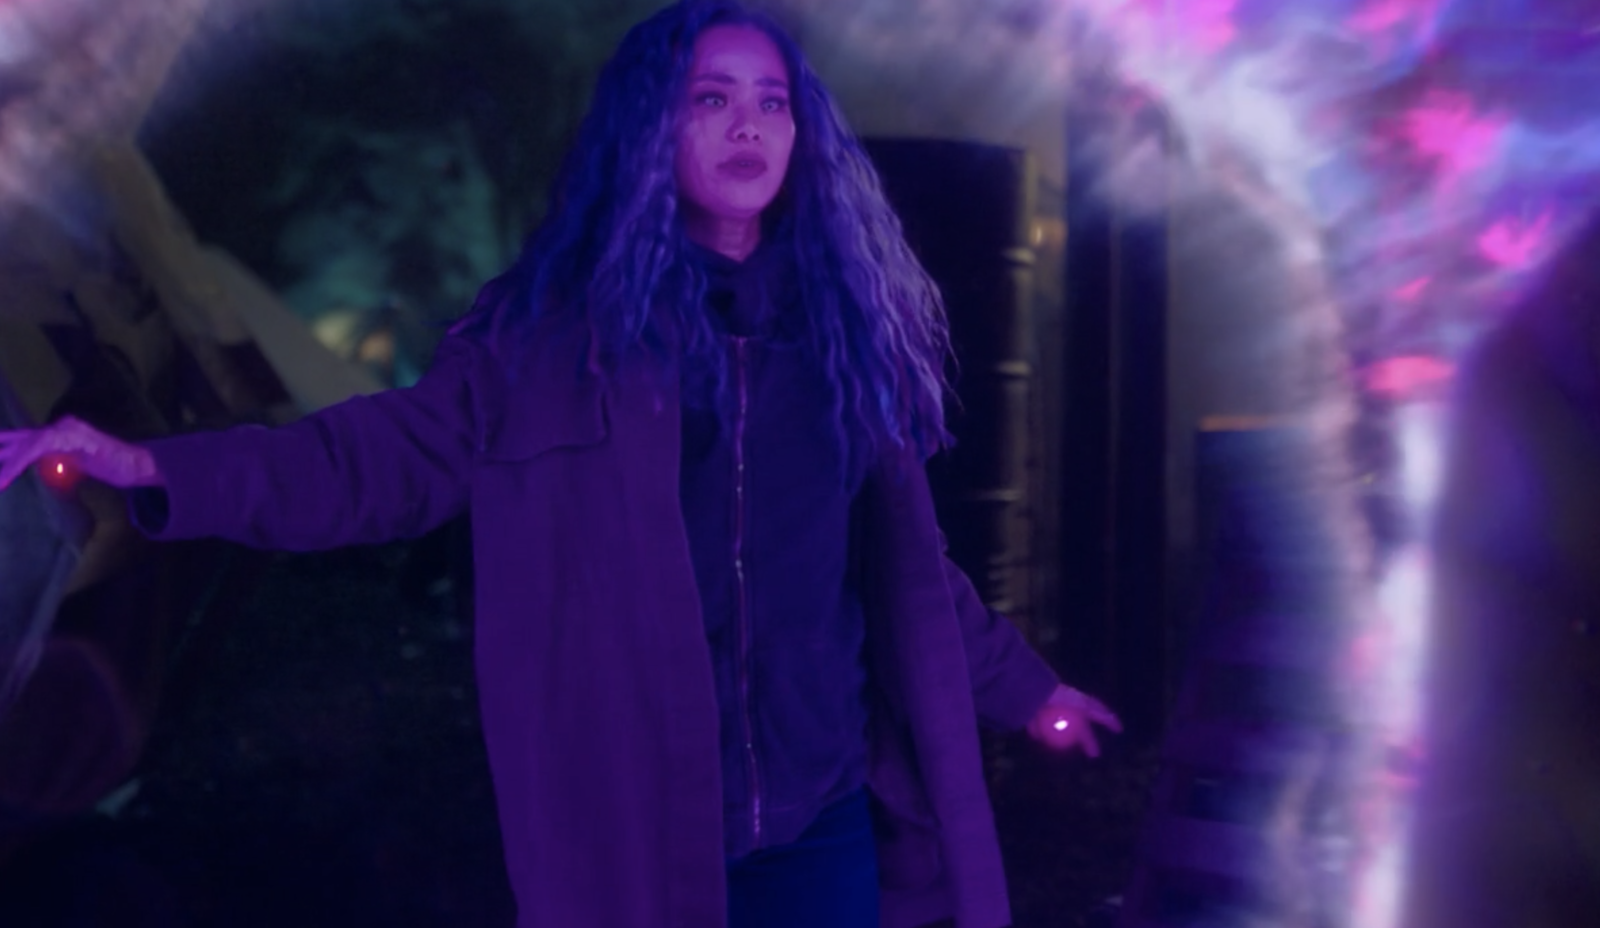 On  The Gifted , while fighting the Purifiers, Blink was shot right in front of John while opening a portal in order to save the others. -  However this doesn't seem to be the end of Blink's story.